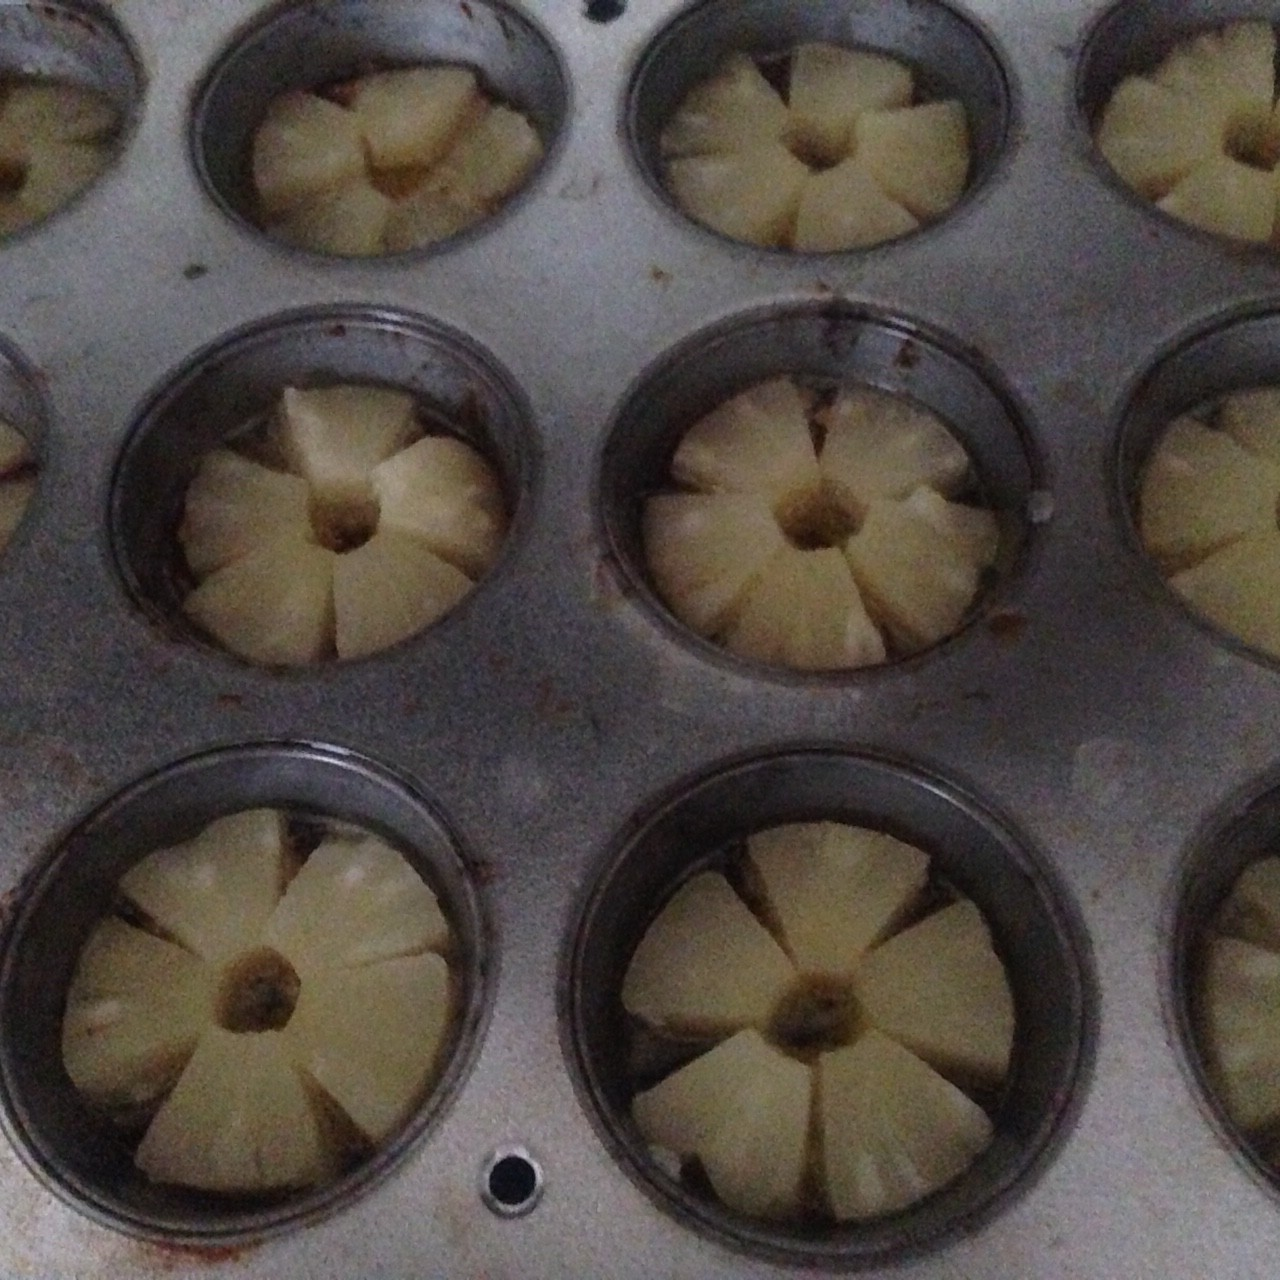 Pineapple Tidbits Or Chunks In Pinepple Upside Down Cake